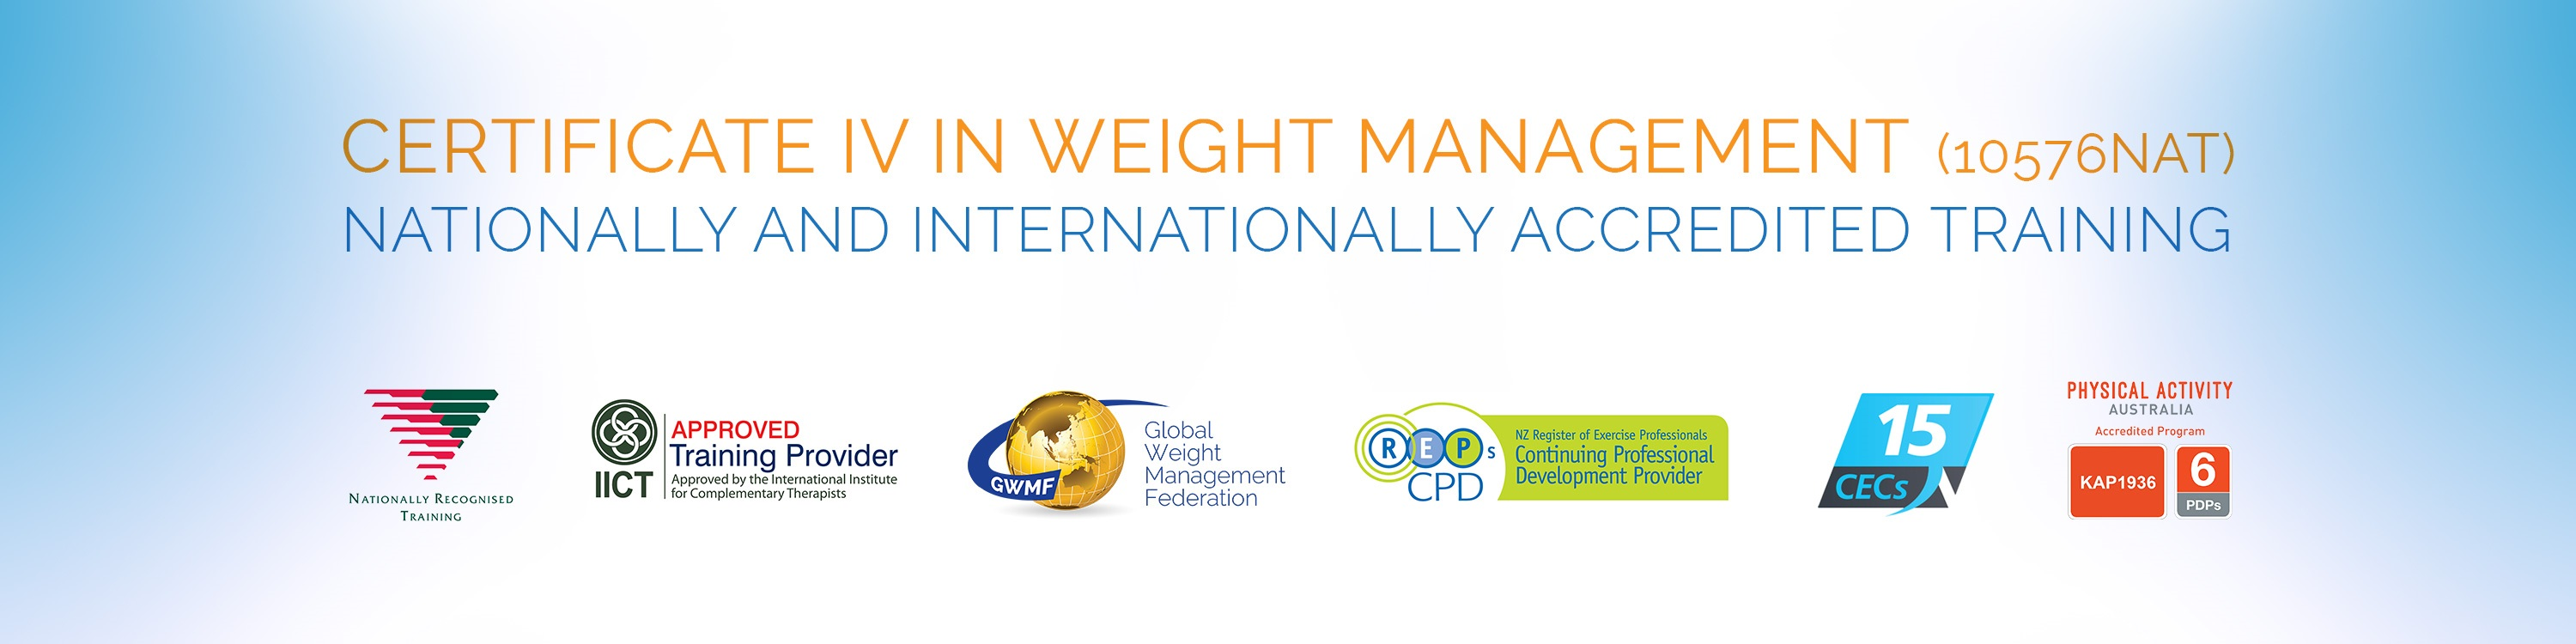 Certificate Iv in Weight Management - Nationally Accredited Training